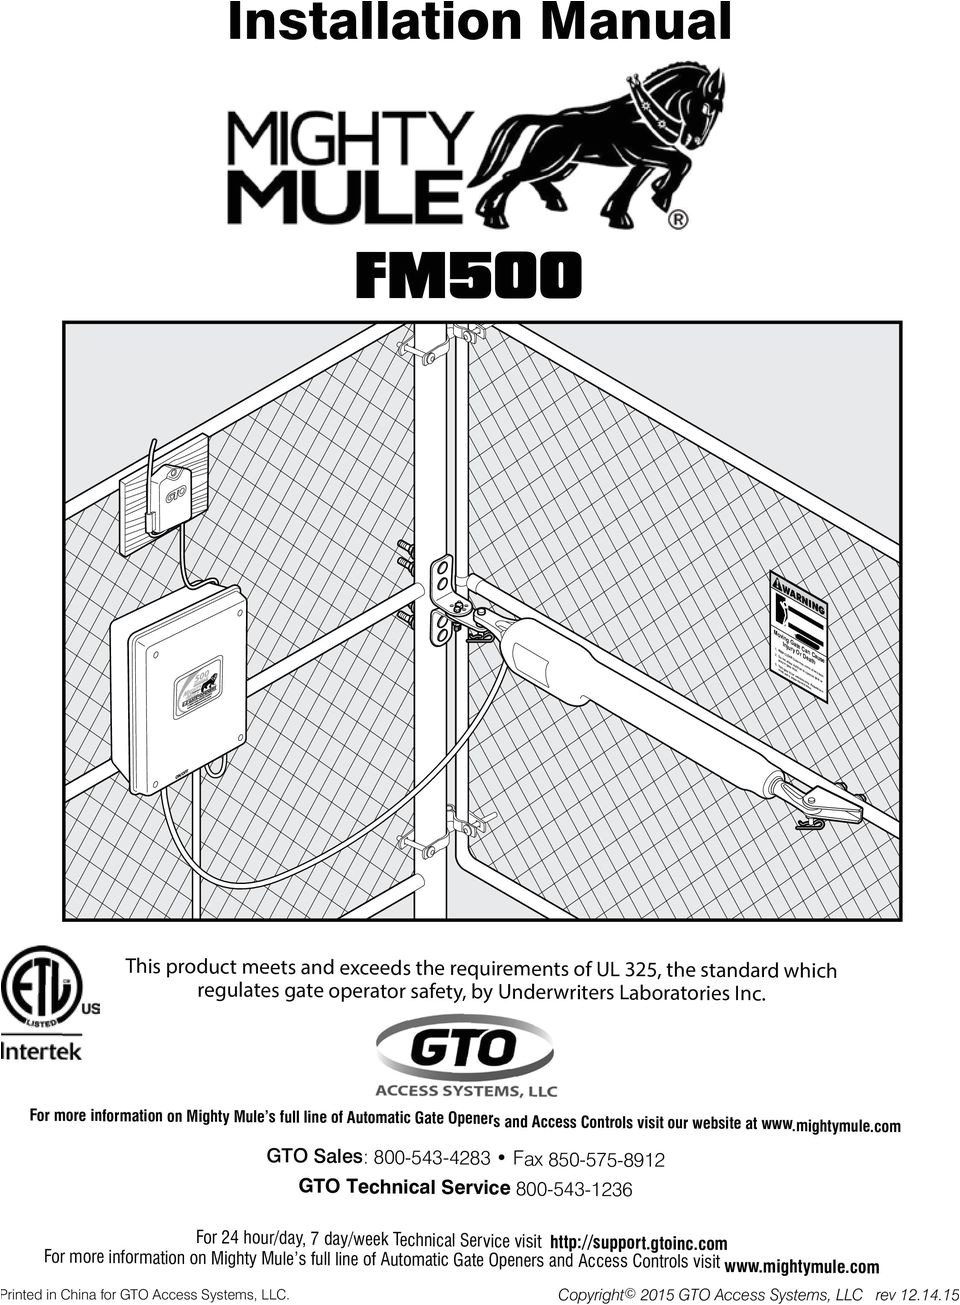 this product meets and exceeds the requirements of ul 35 the standard which regulates gate